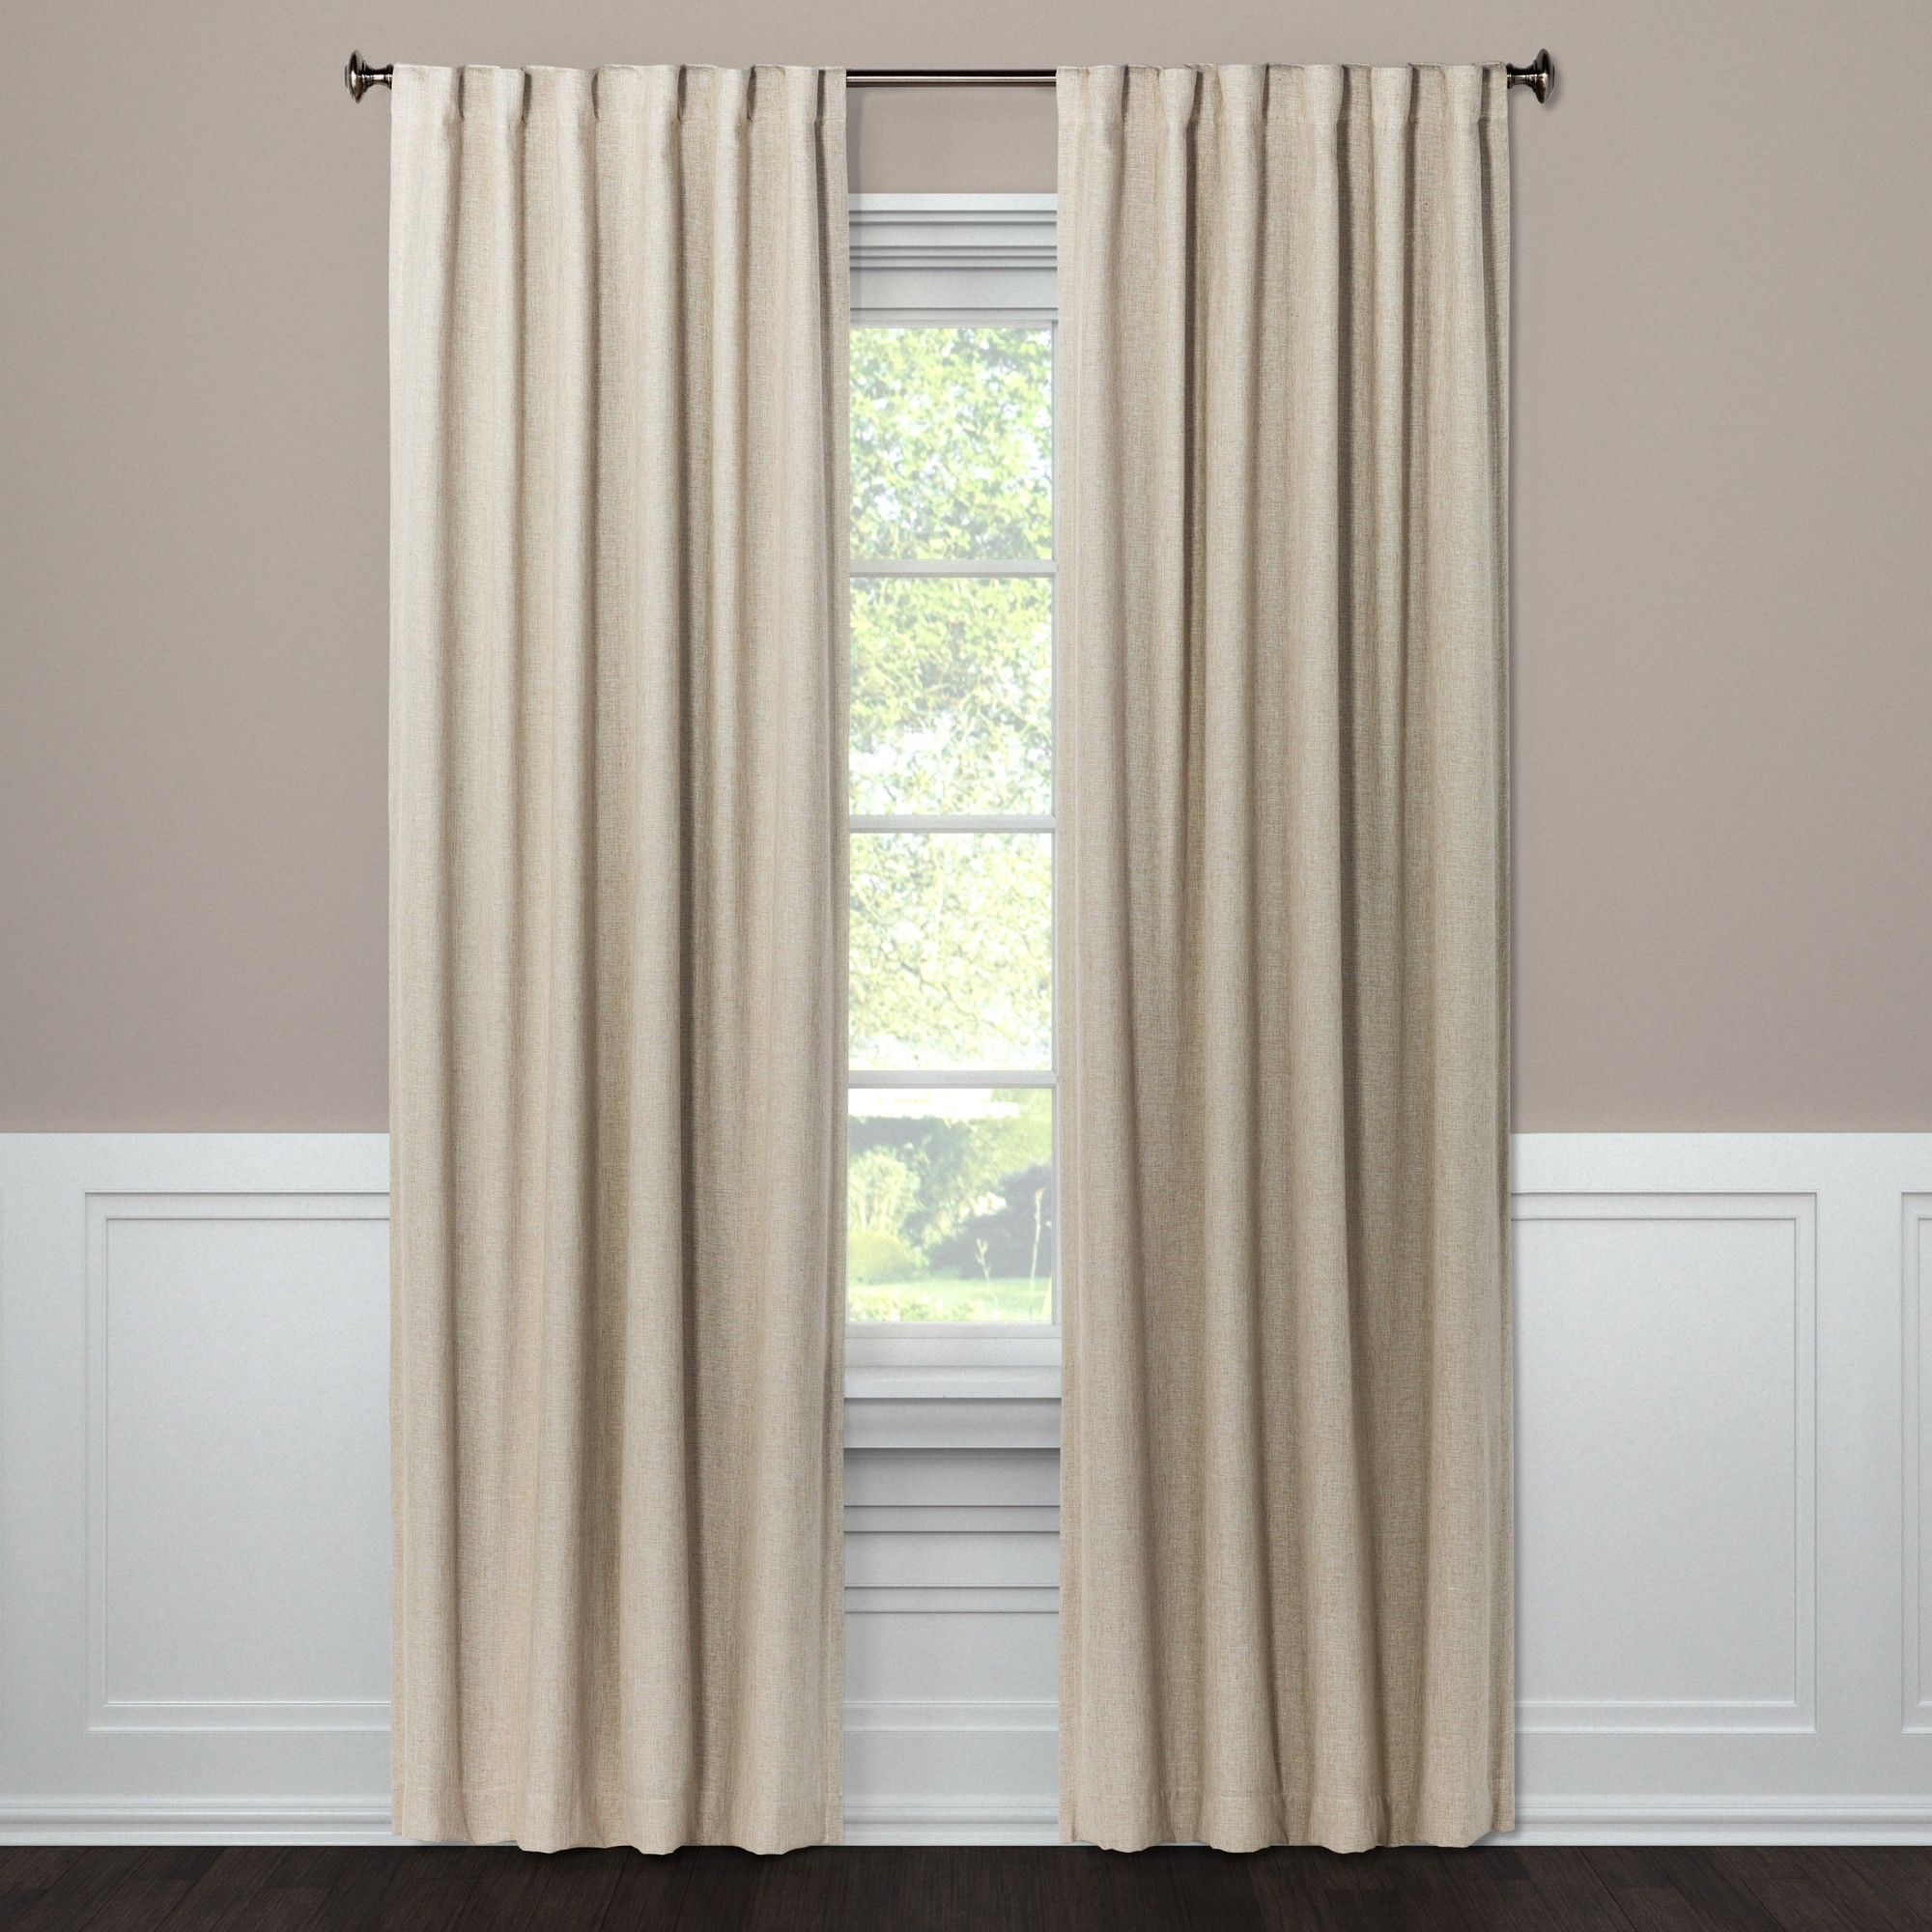 Blackout Curtain Panel Aruba White 108 – Threshold, Sour Pertaining To Archaeo Washed Cotton Twist Tab Single Curtain Panels (View 18 of 20)